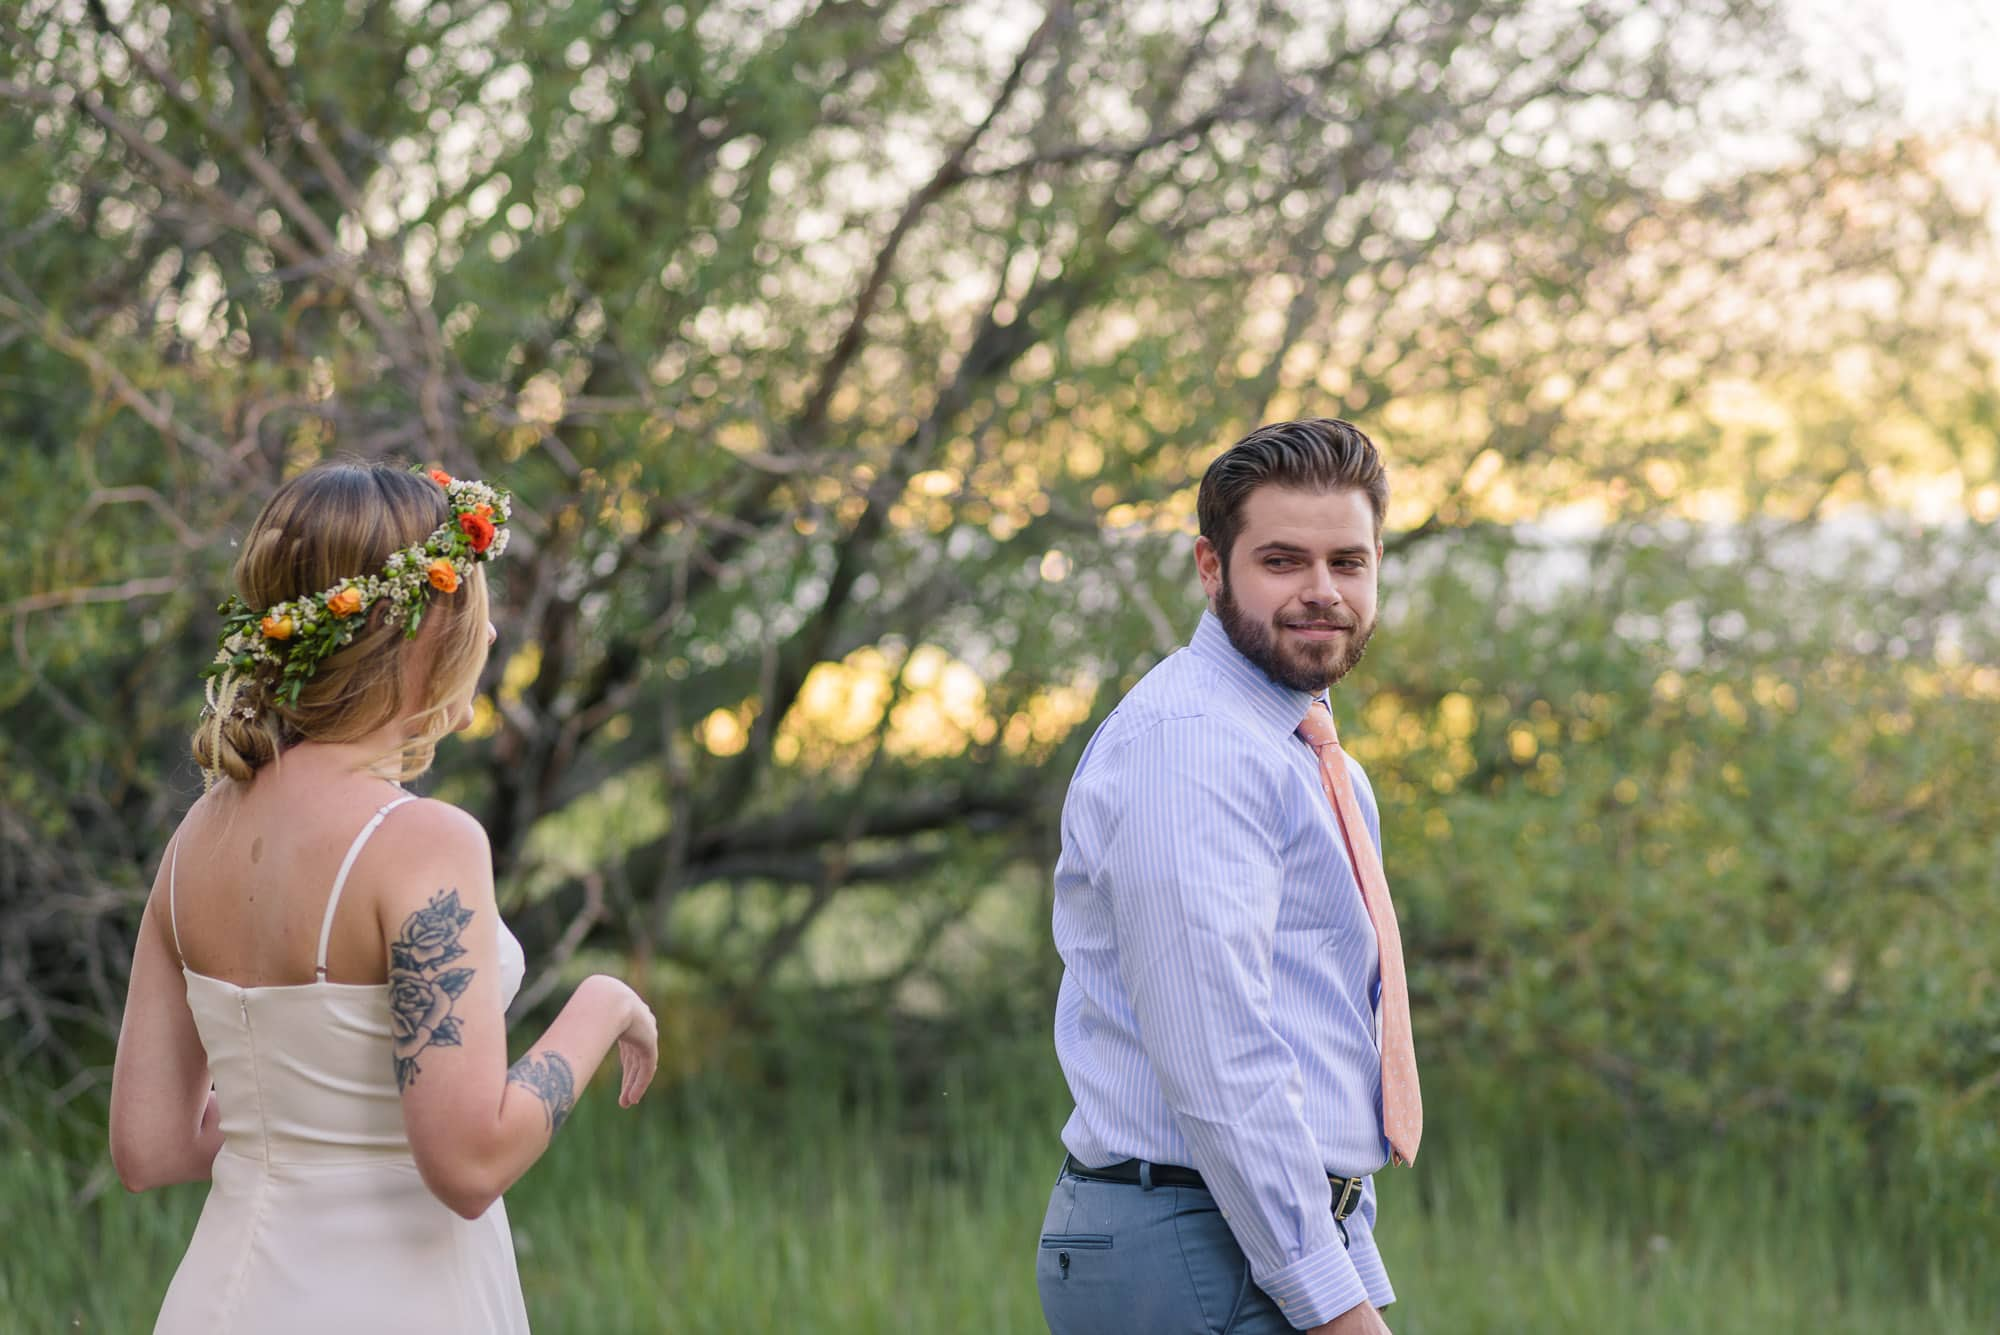 005_Alan_and_Heidi_Kensey_Josh_Big_Bear_Elopement